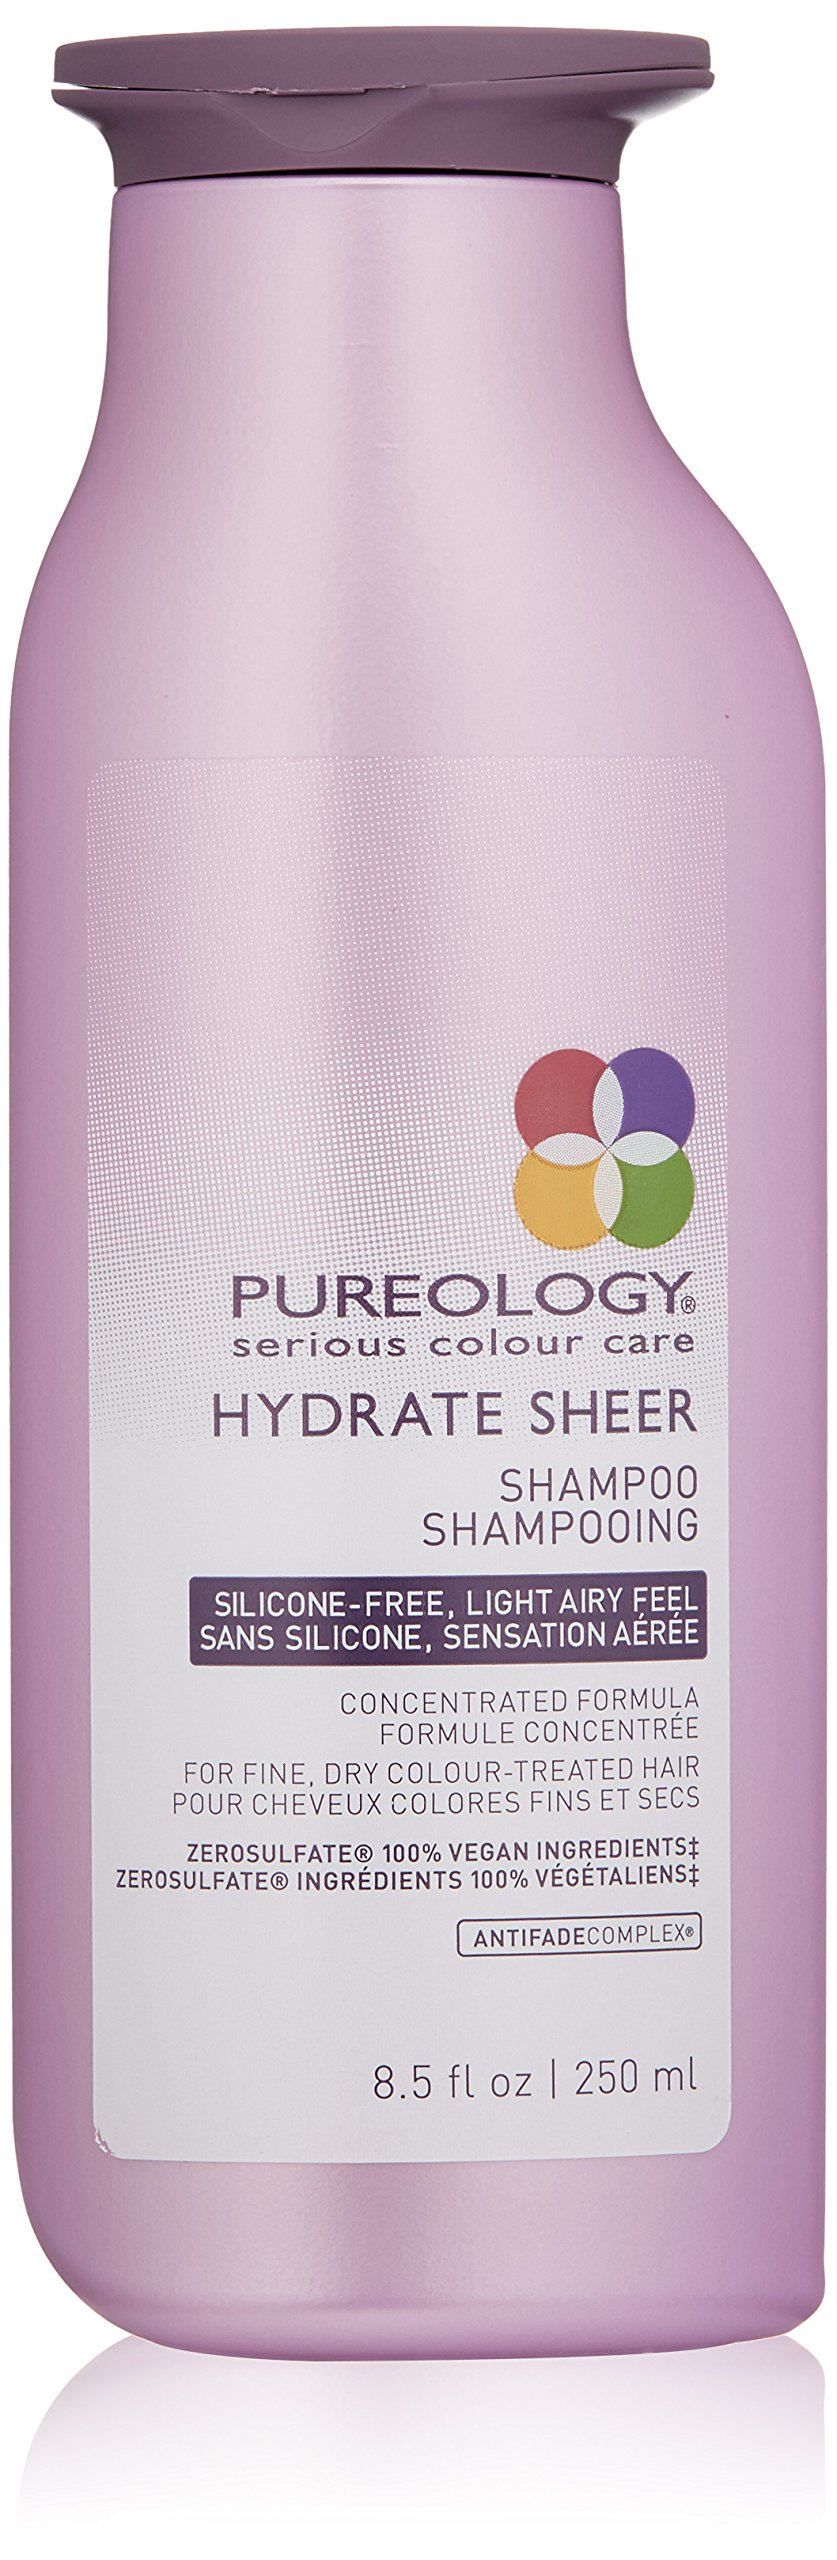 Pureology Hydrate Sheer Moisturizing Shampoo for Color Treated Hair,Sulfate-Free, Silicone-Free,8.5 oz. by Pureology